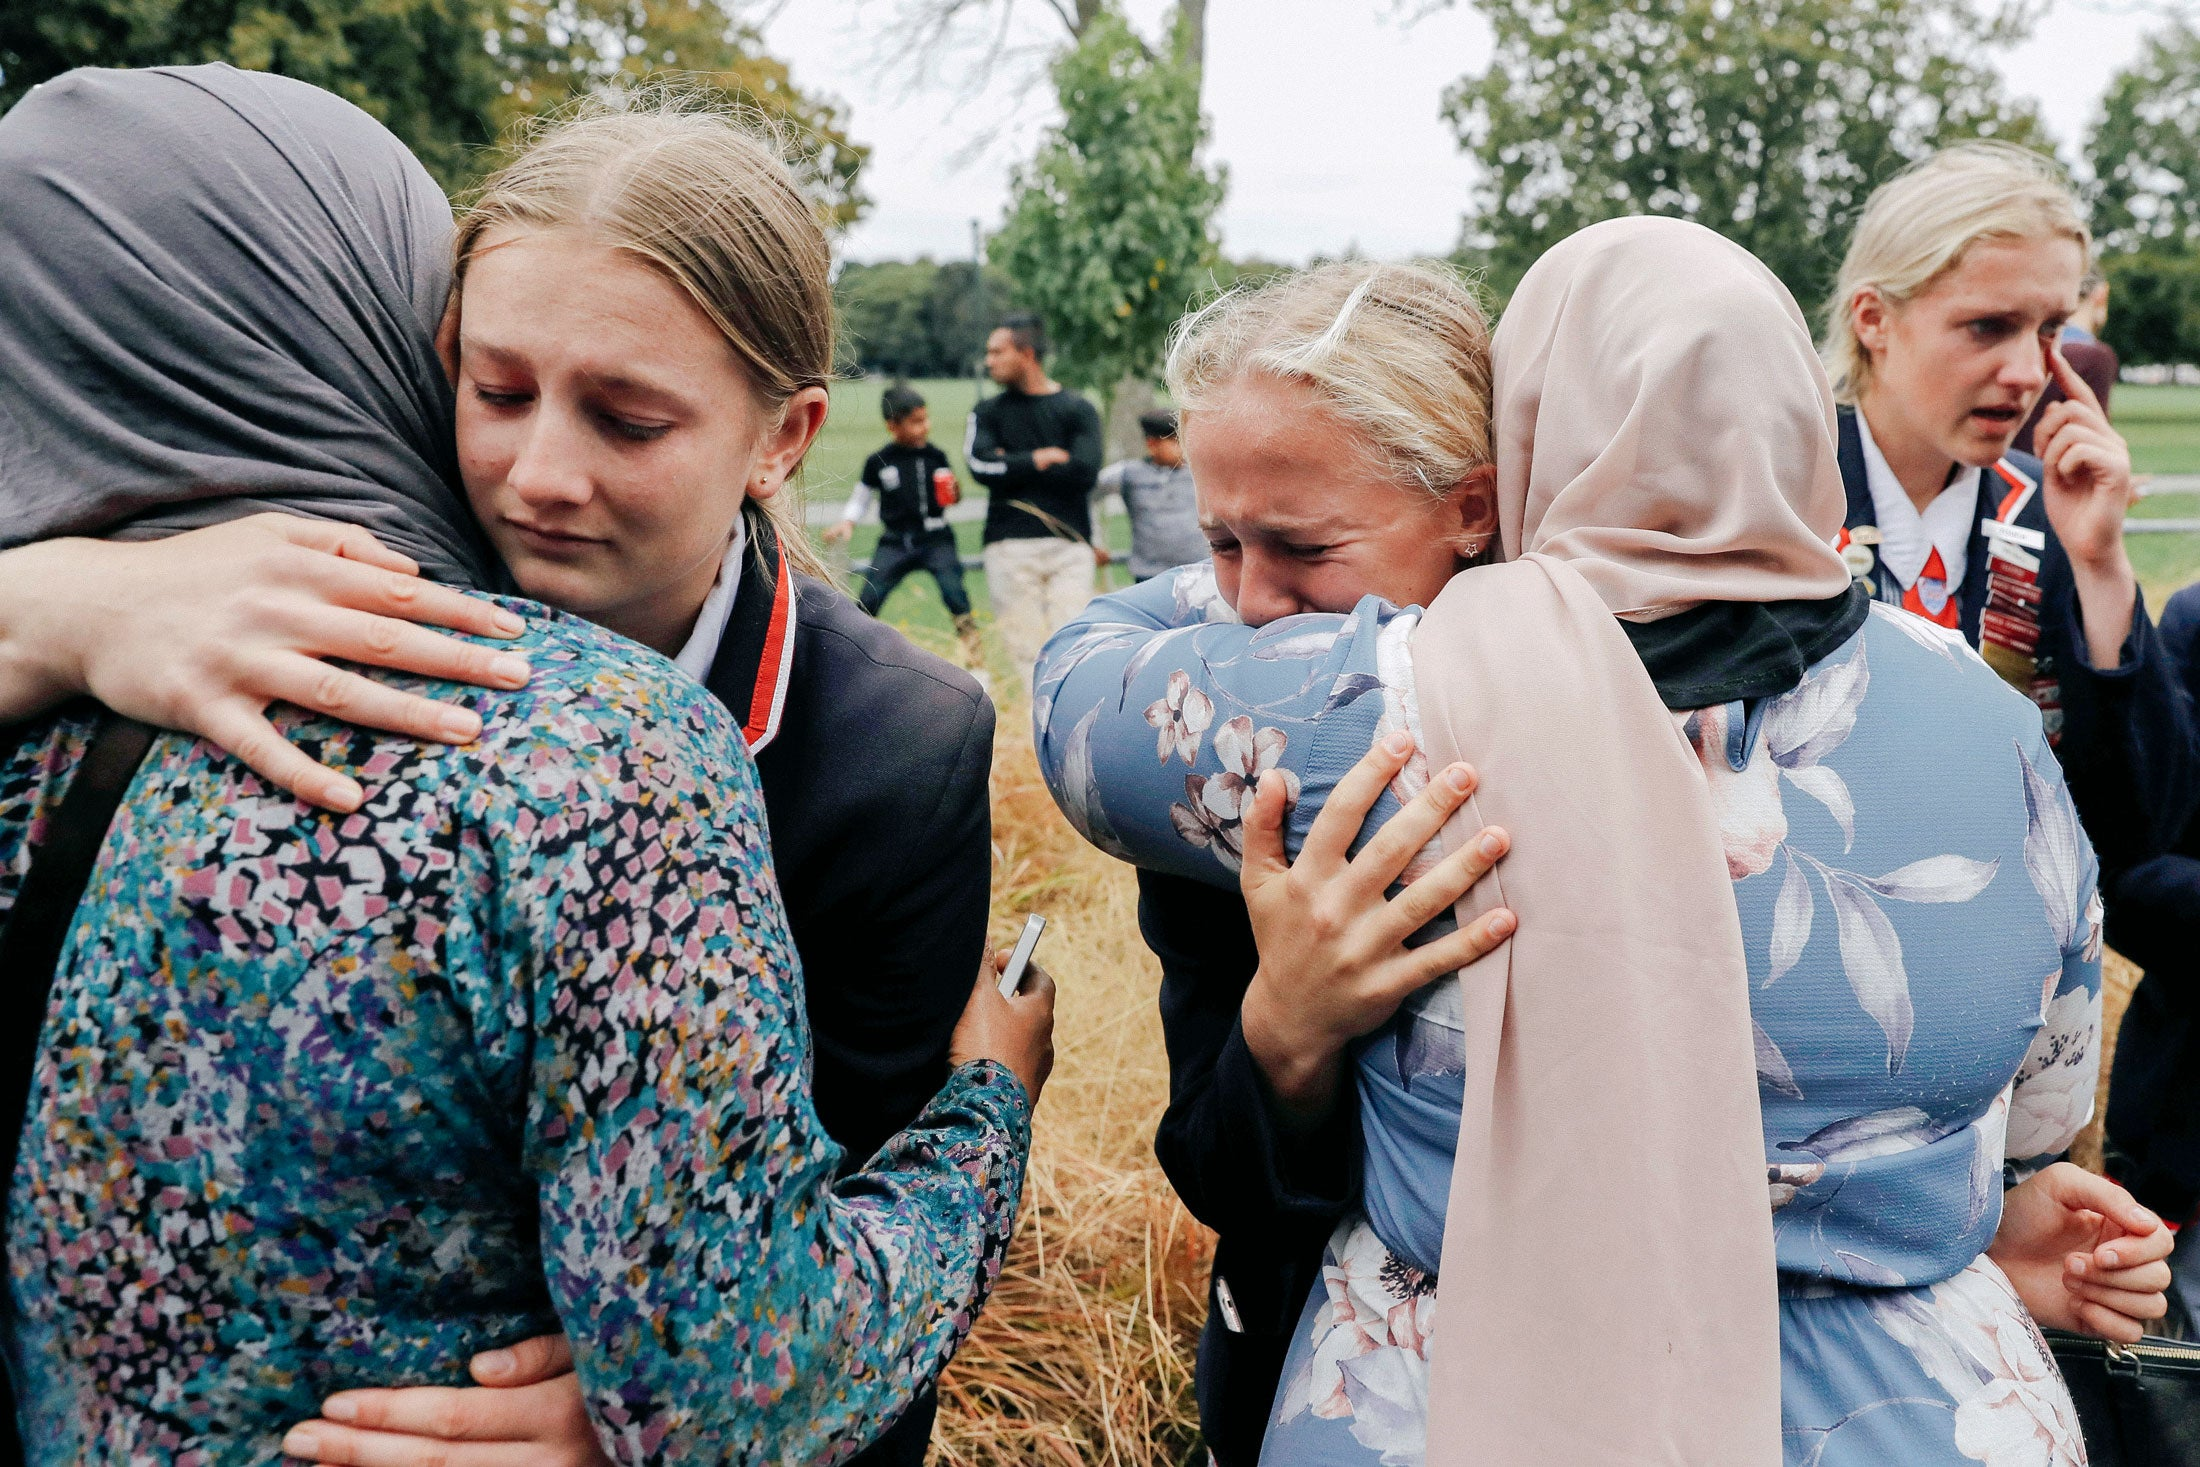 High school students from a Christian school embrace Muslims waiting for news of their relatives following Friday's shooting in Christchurch, New Zealand.